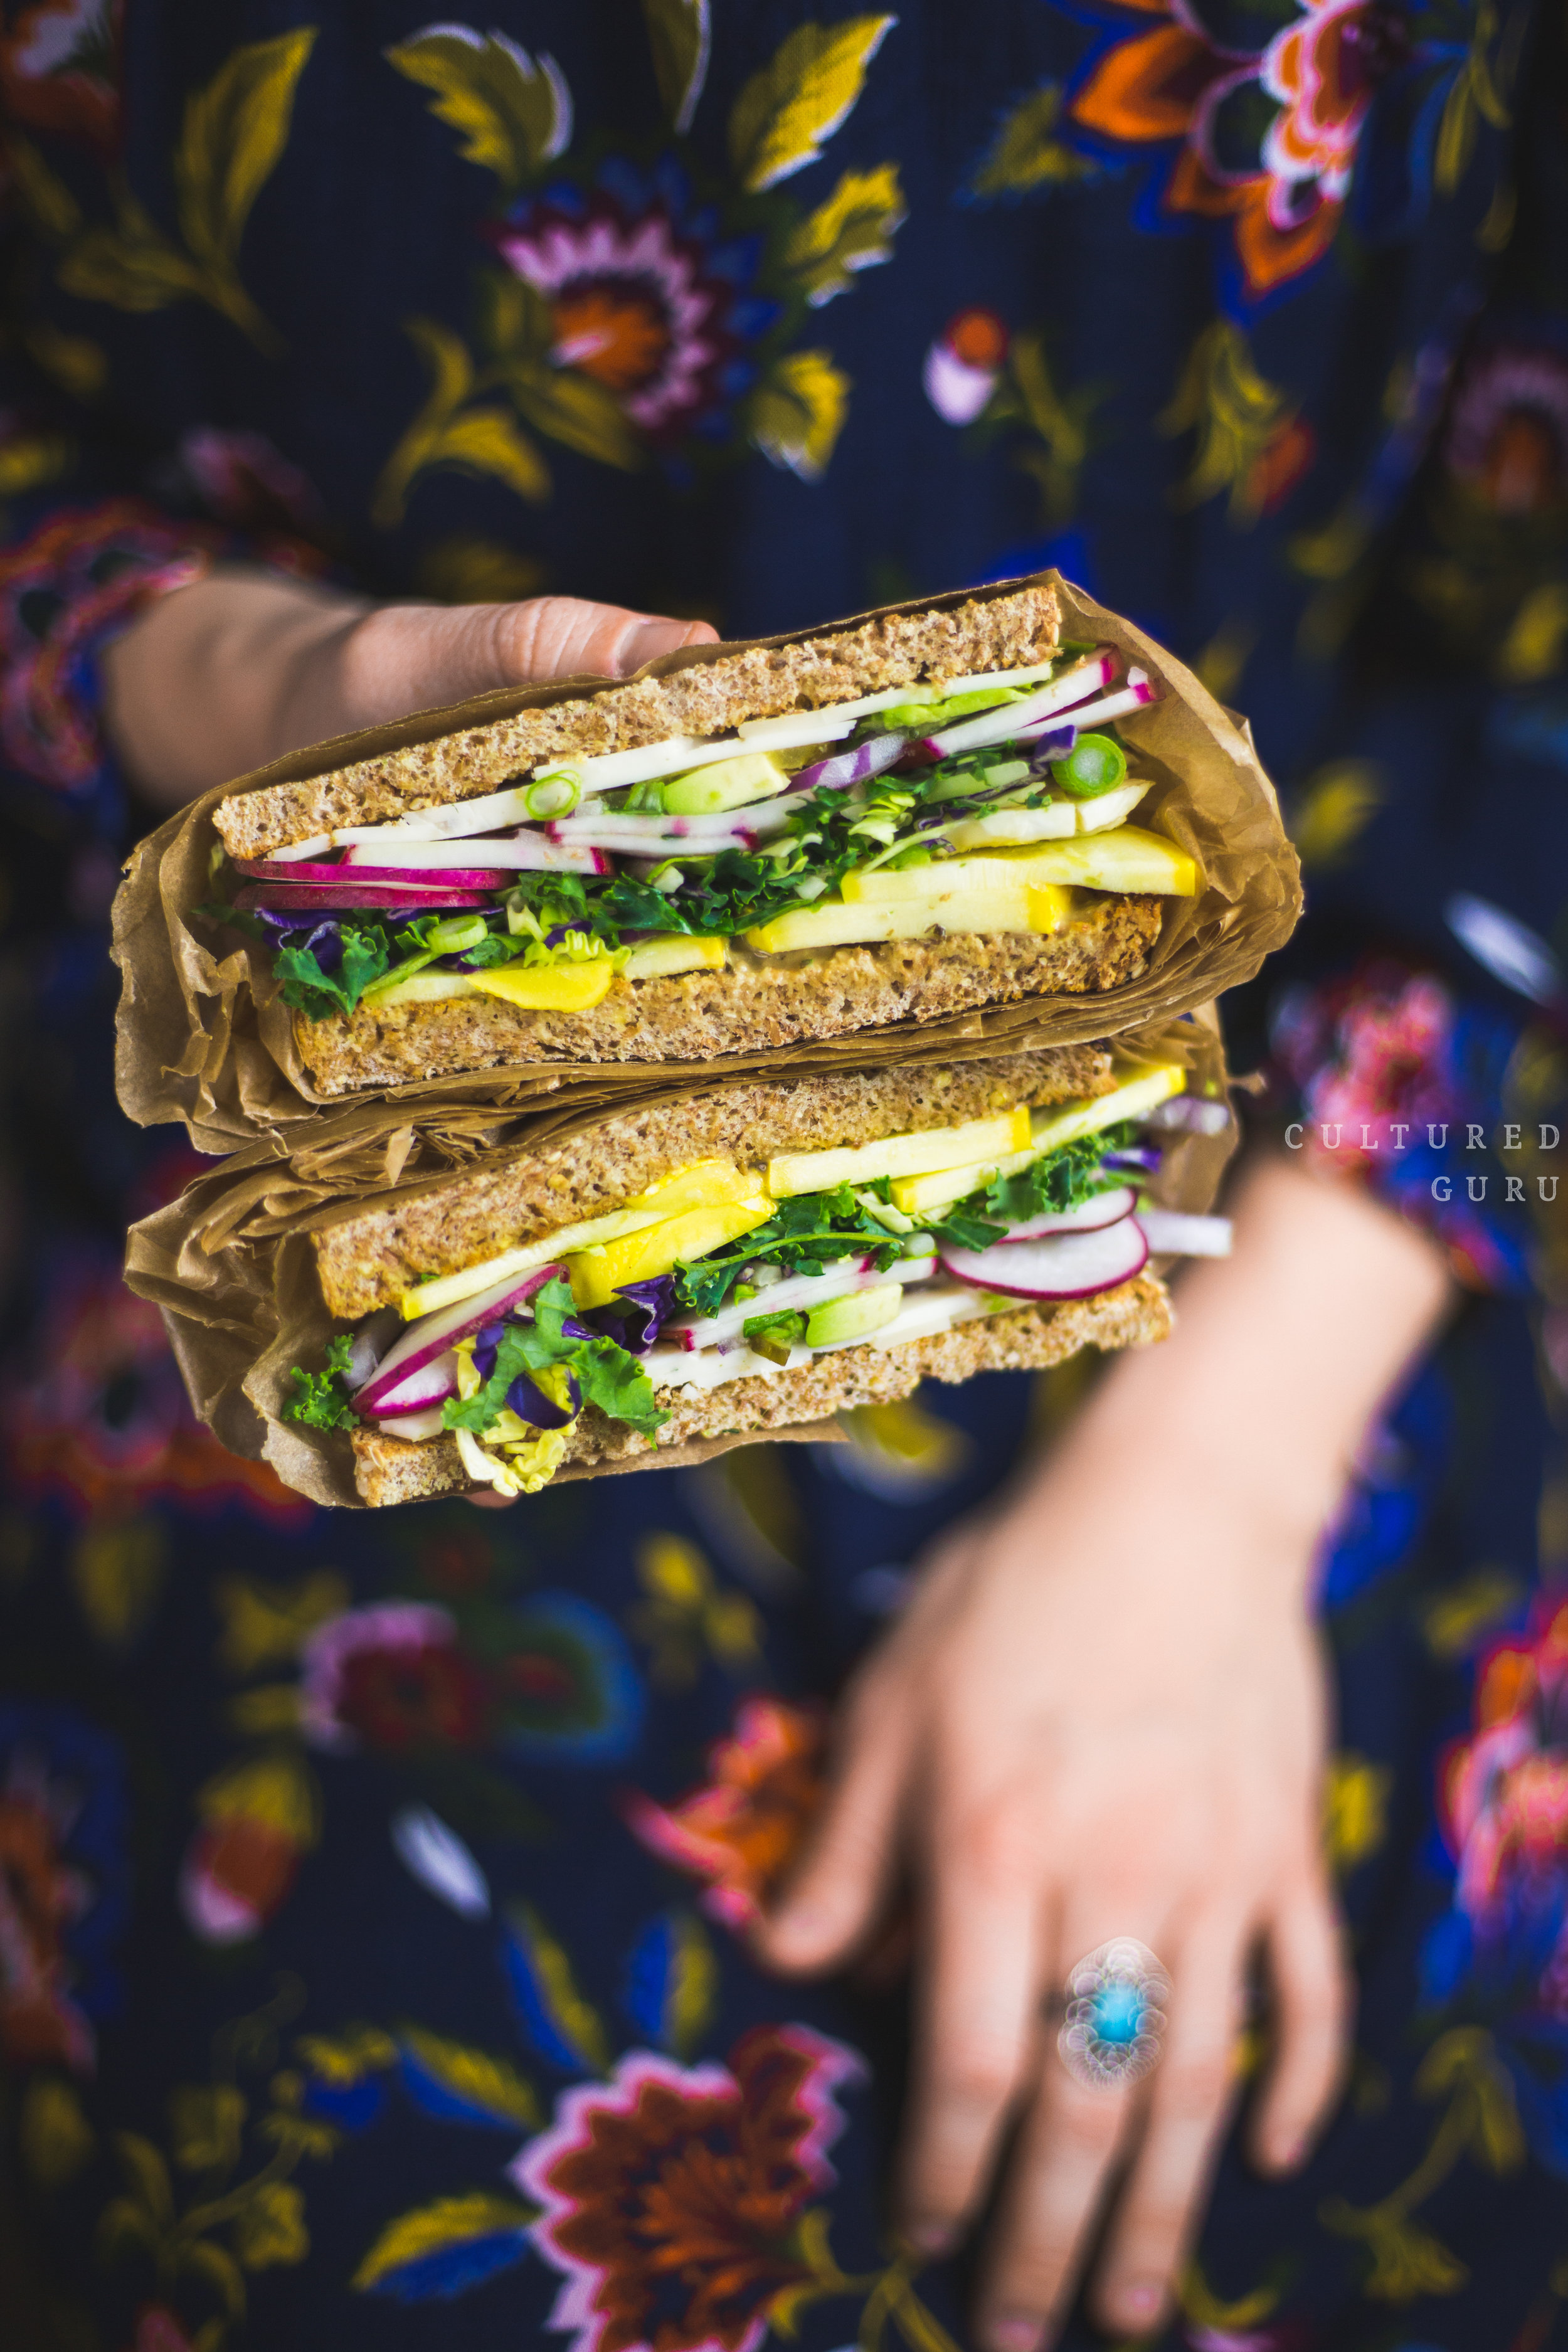 Vegan Sandwich Recipe | Vegetable Sandwich with Probiotic Fermented Dill Pickles